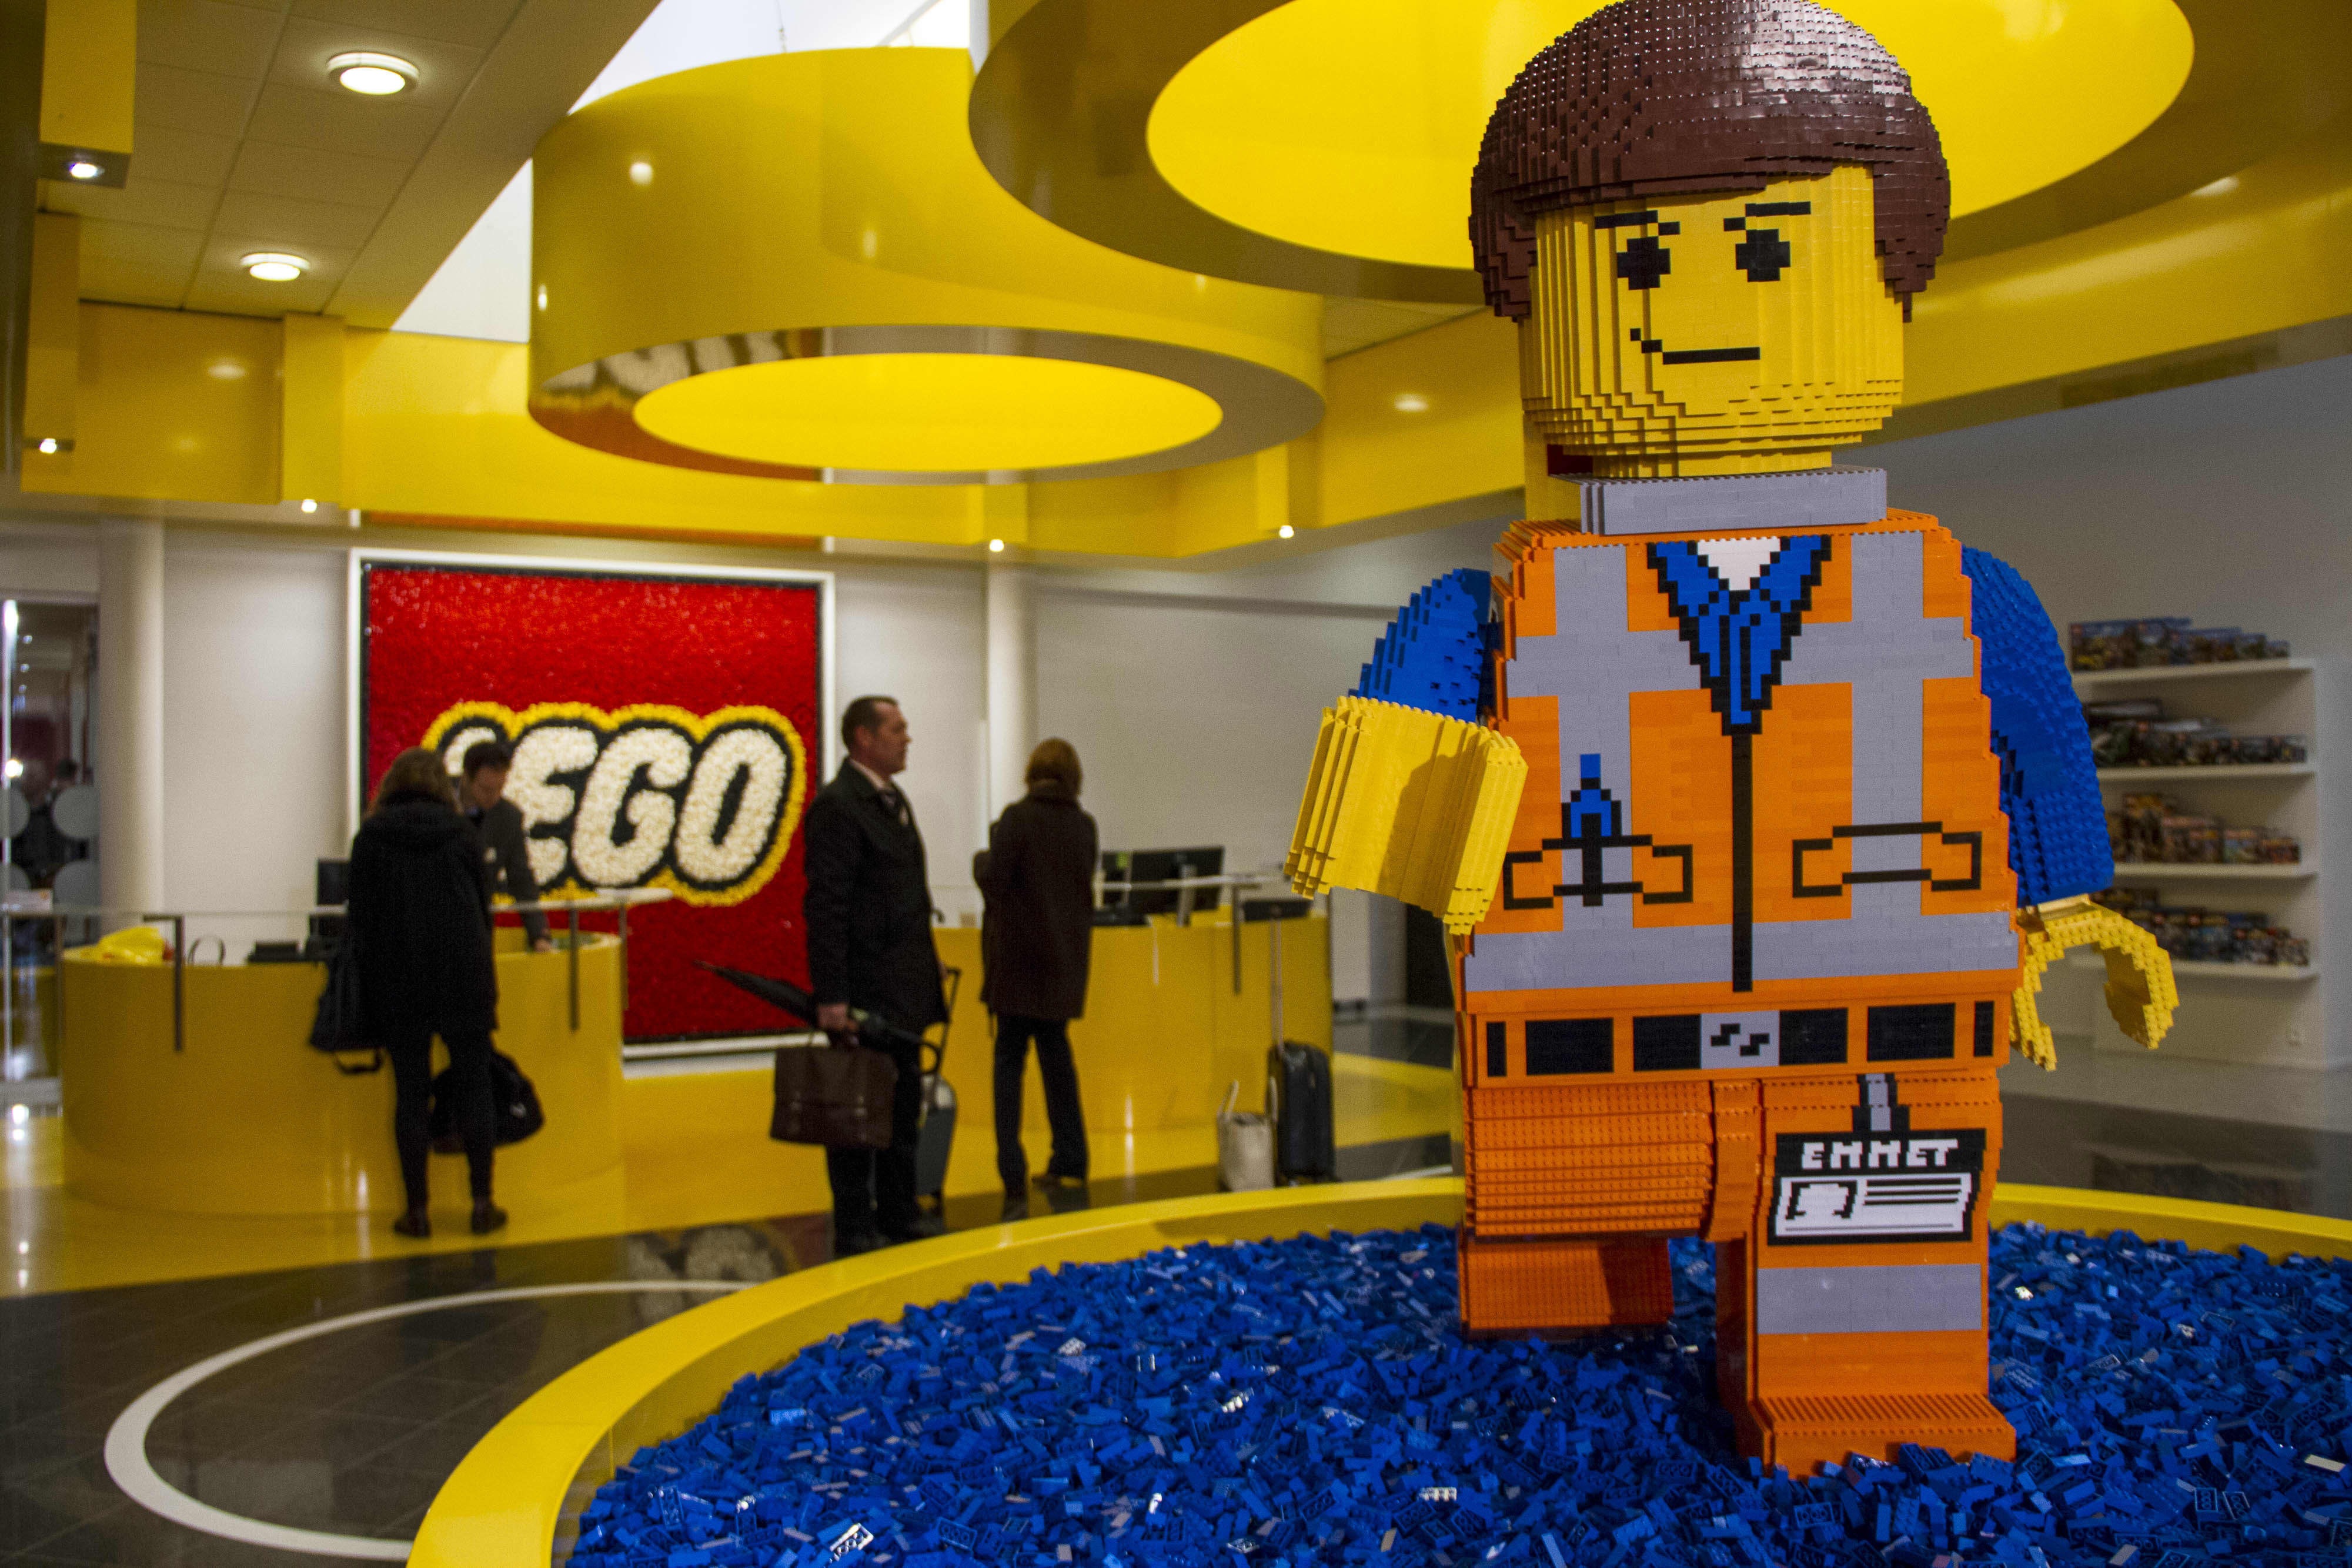 A Lego brick figurine of Emmet Brickowoski, a character from 'The Lego Movie', stands in the reception area at the headquarters of Lego A/S in Billund, Denmark.